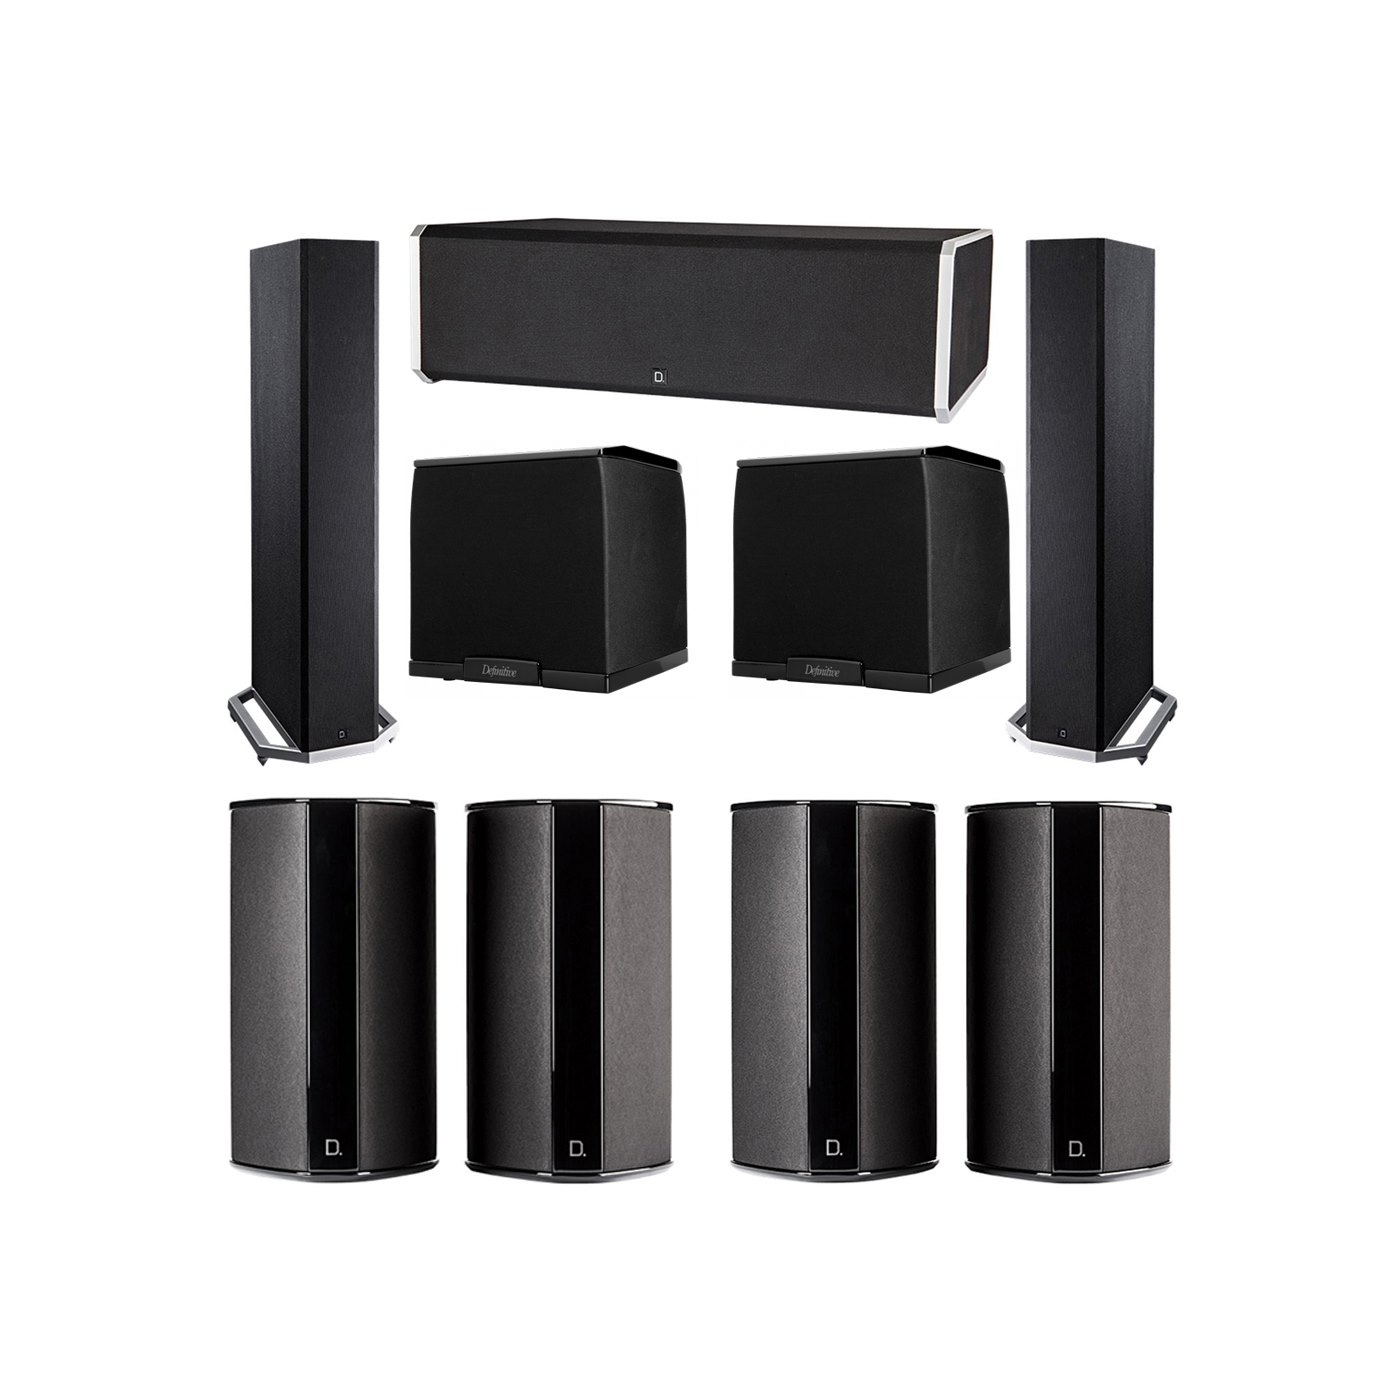 Definitive Technology 7.2 System with 2 BP9020 Tower Speakers, 1 CS9080 Center Channel Speaker, 4 SR9080 Surround Speaker, 2 Definitive Technology SuperCube 2000 Powered Subwoofer